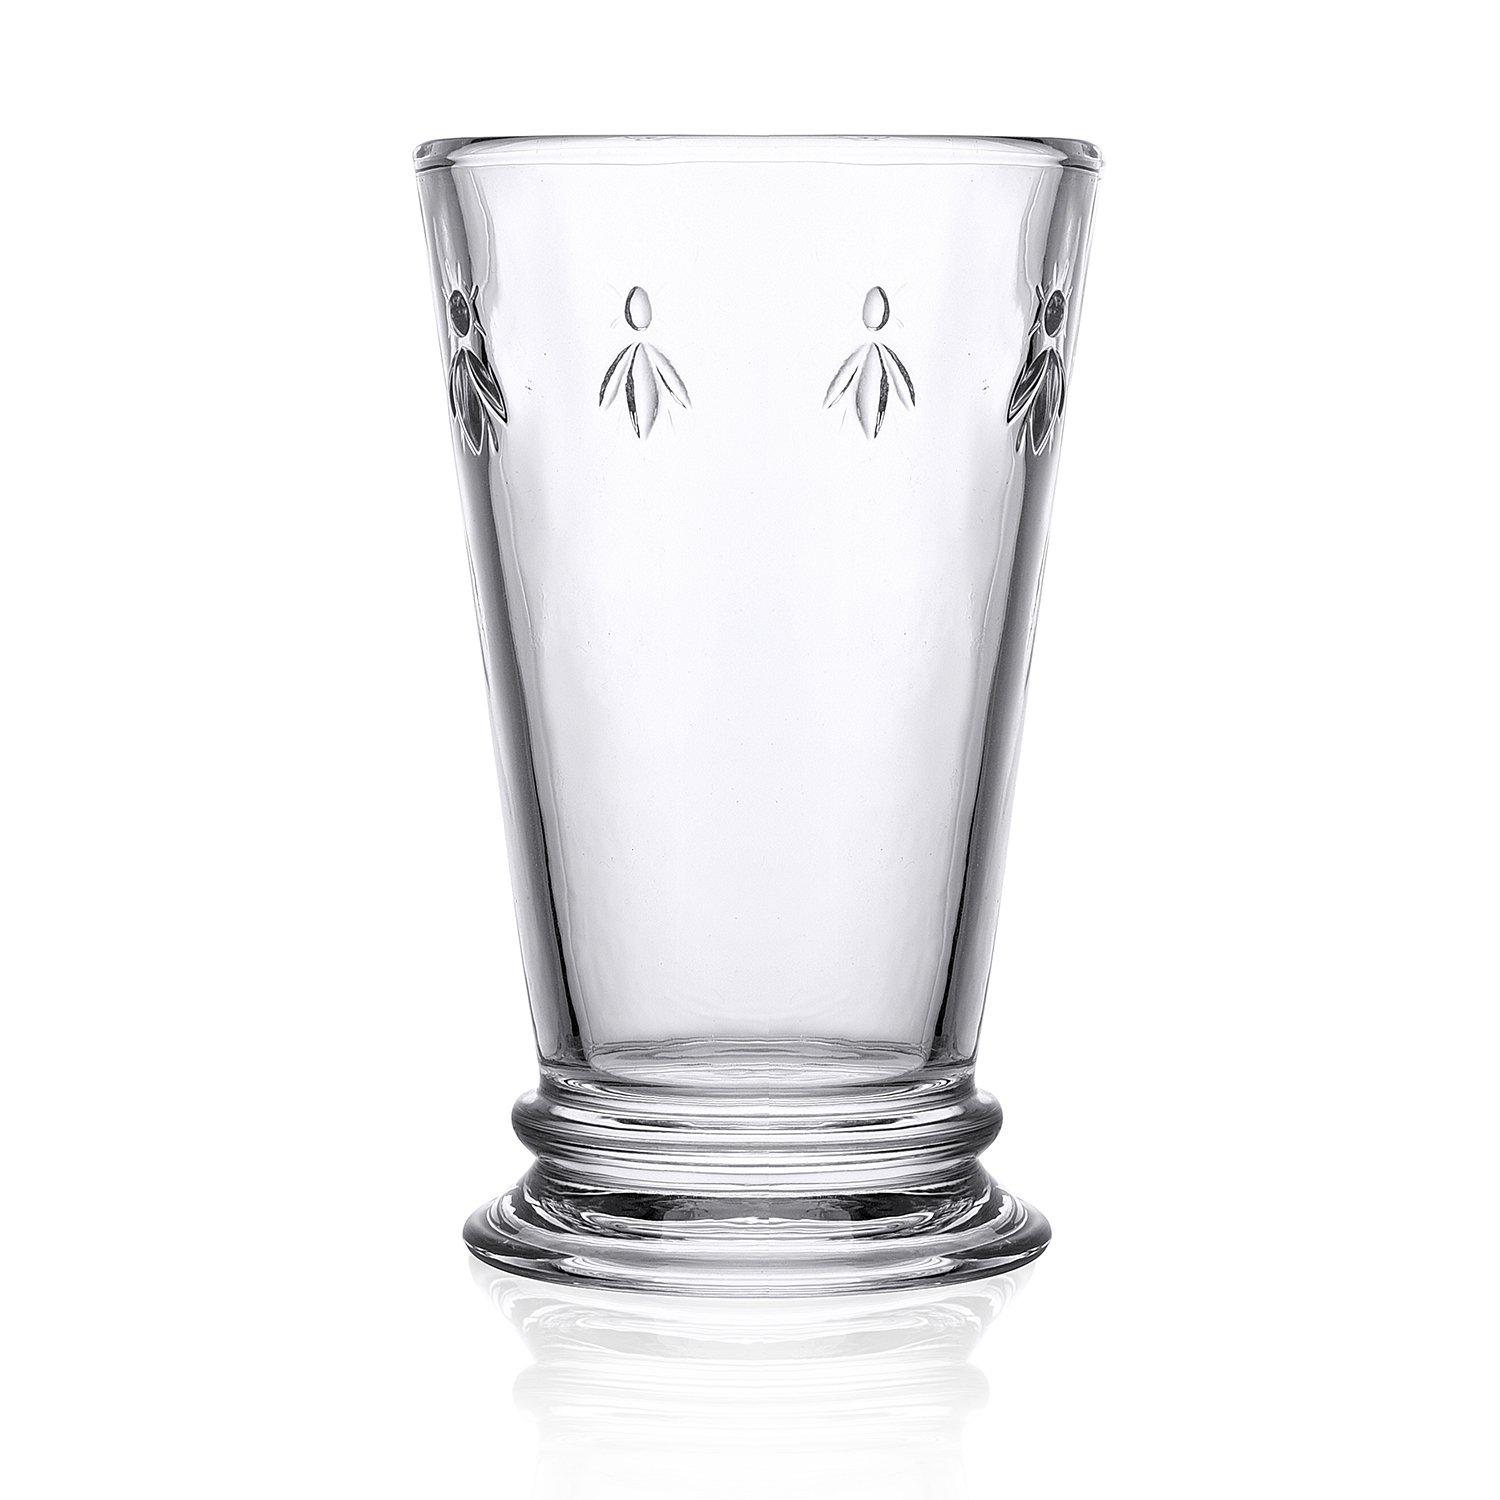 Melleo Highball Glasses Set of 6 Clear 10.5-ounce Bee Glasses Juice Water Drinking Double Old Fashioned